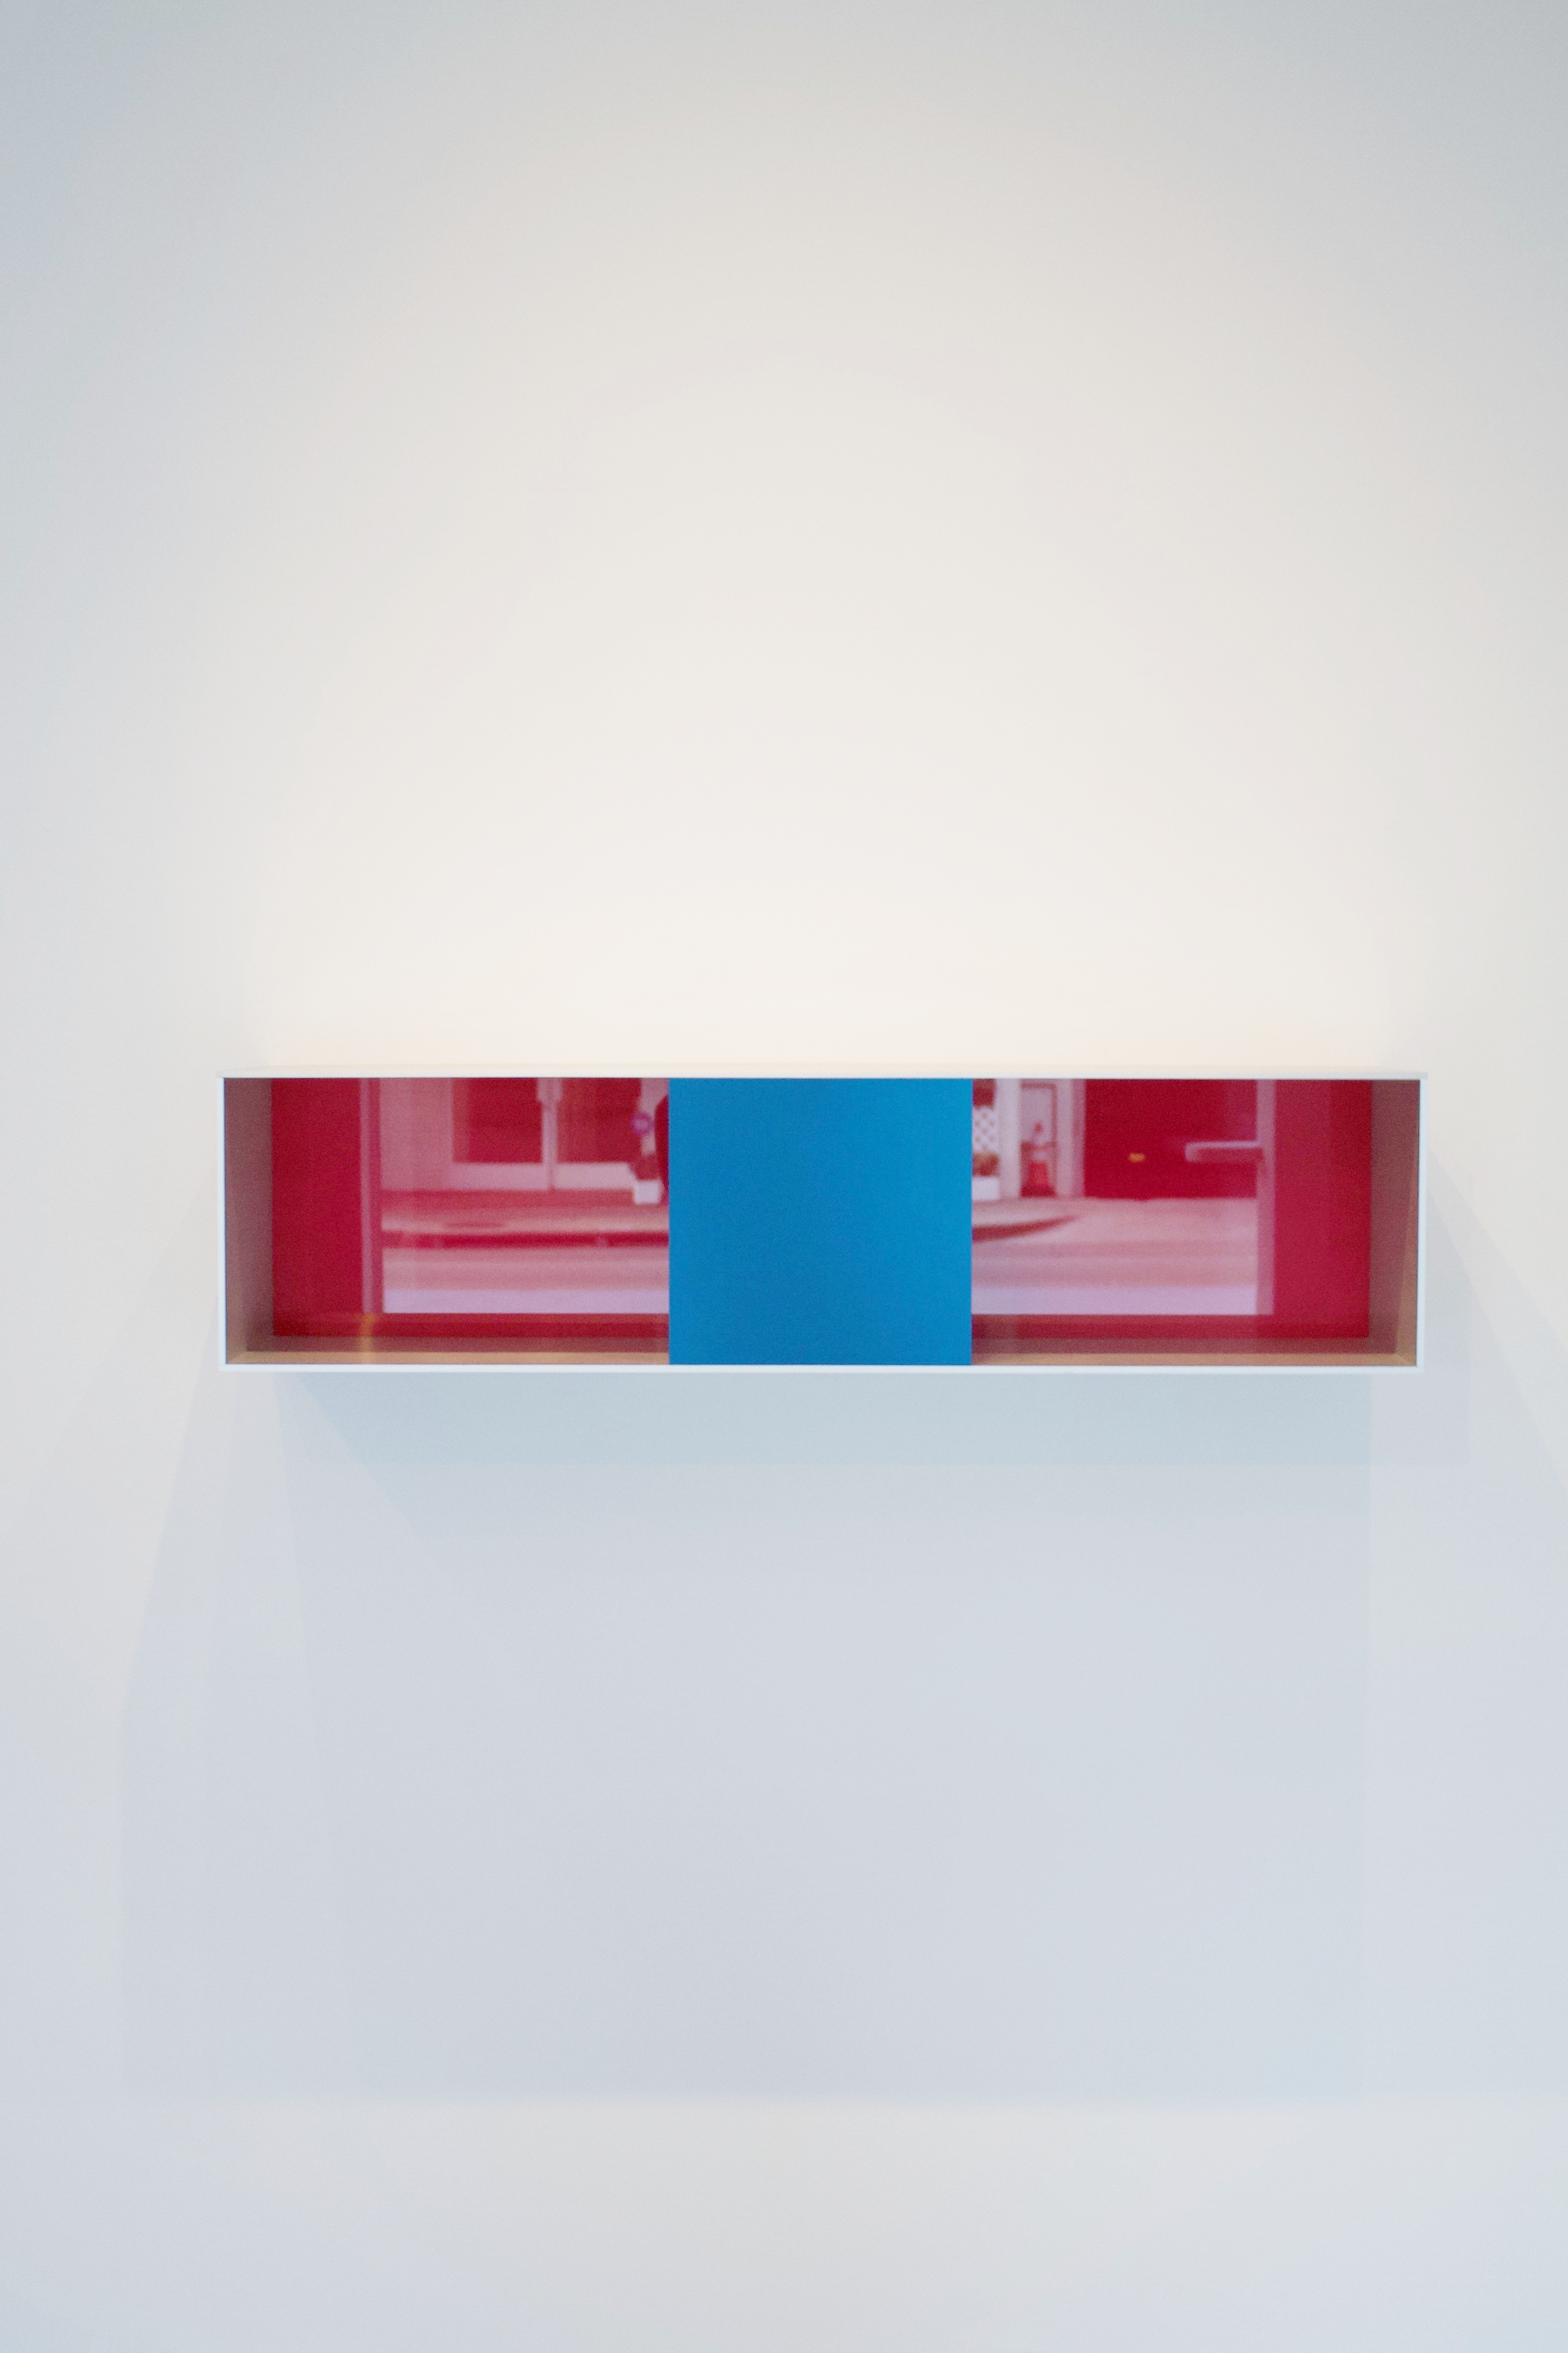 Donald Judd: February 24 - April 7, 2018